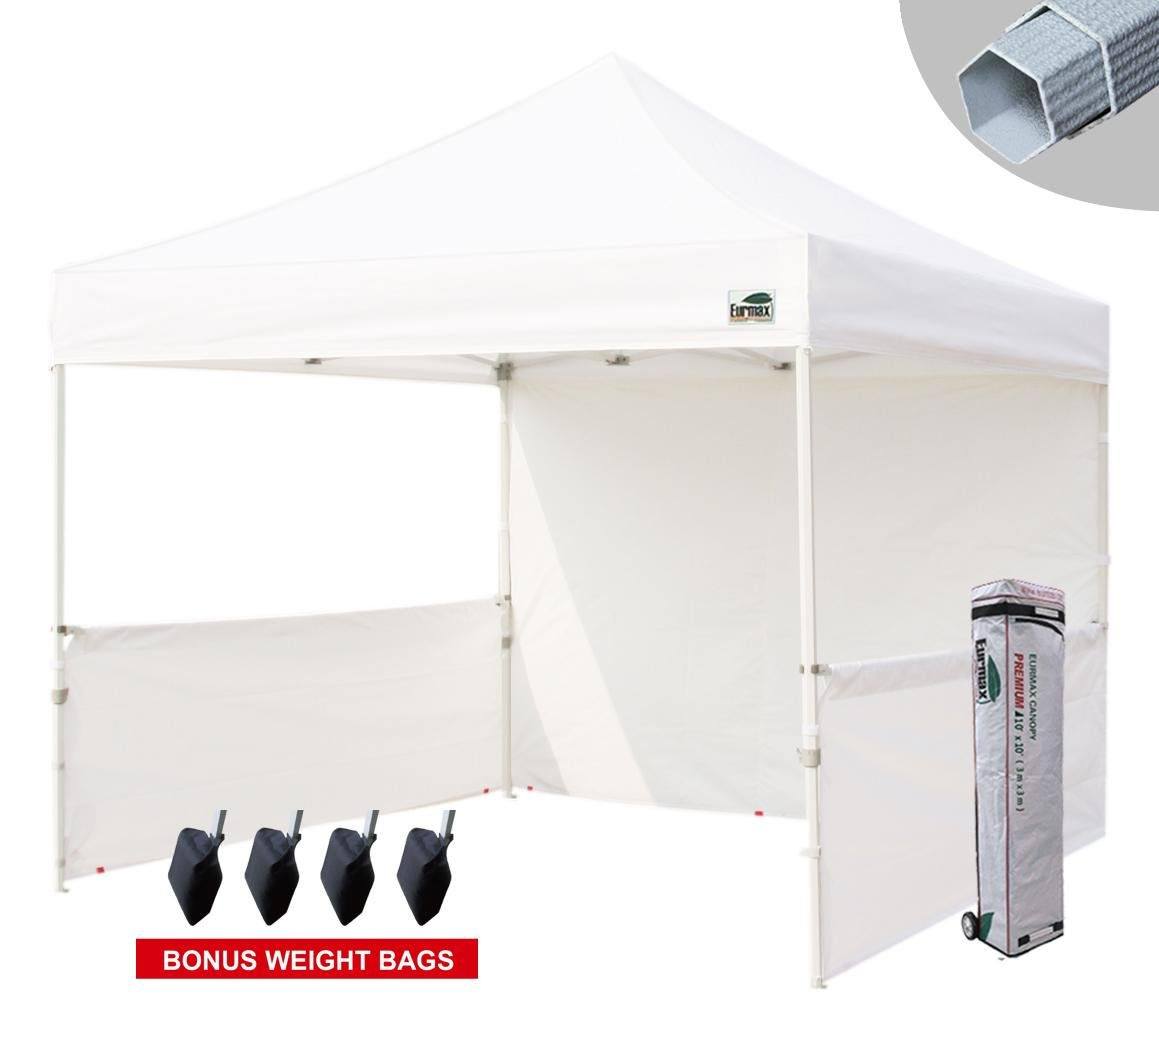 Eurmax Premium 10x10 Instant Canopy Craft Display Tent Portable Booth Market Stall with Carry Bag, White